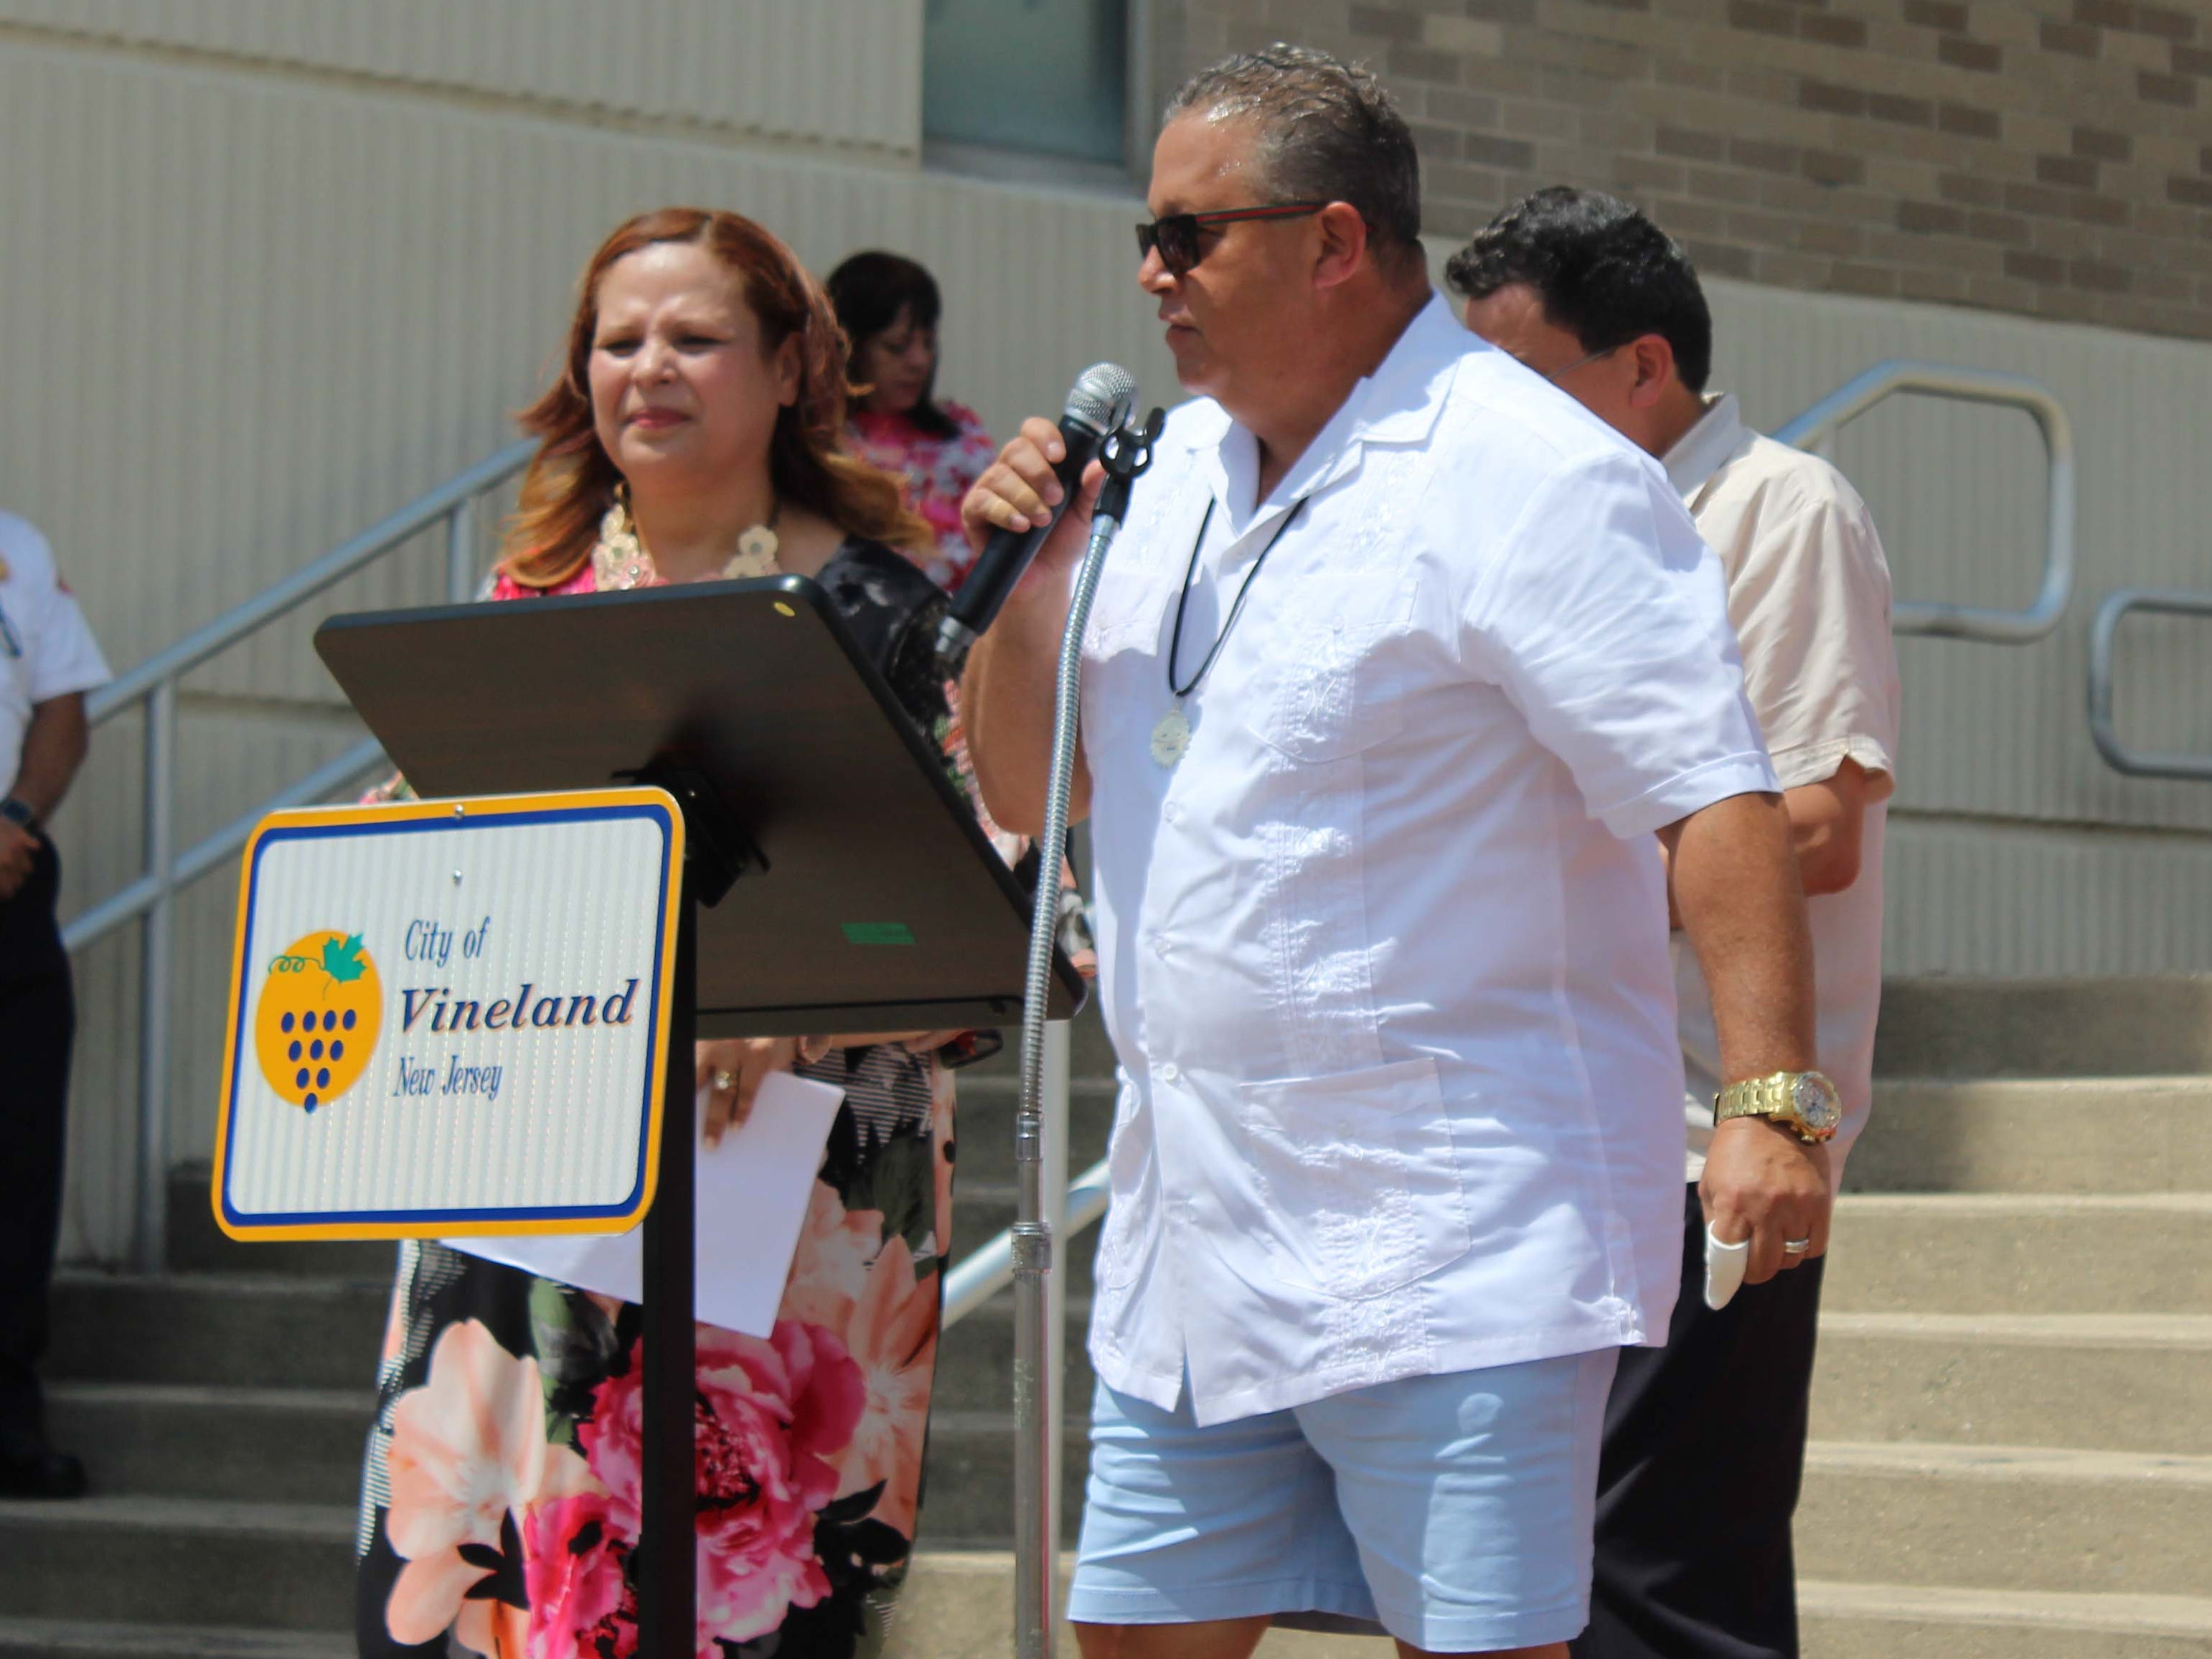 William Gonzalez, Executive Director of the Cumberland County Habitat for Humanity, gives an acceptance speech after receiving an award for his community service during the start of the Puerto Rican Festival in Vineland on Sunday, July 22, 2018.